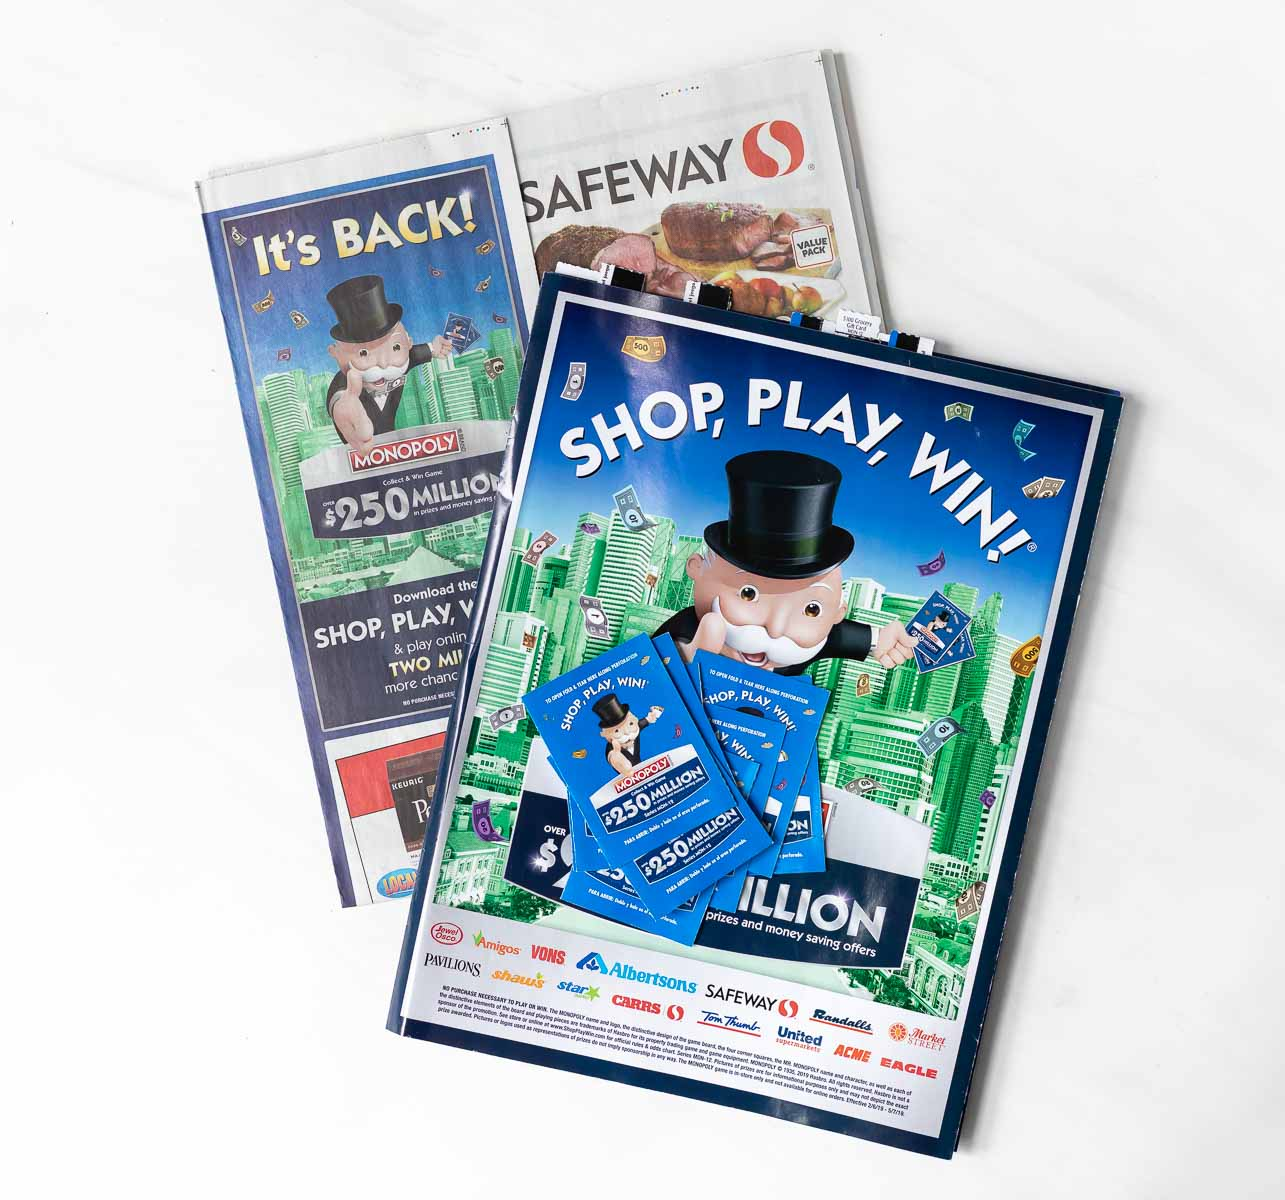 safeway ad and monopoly collect and win game